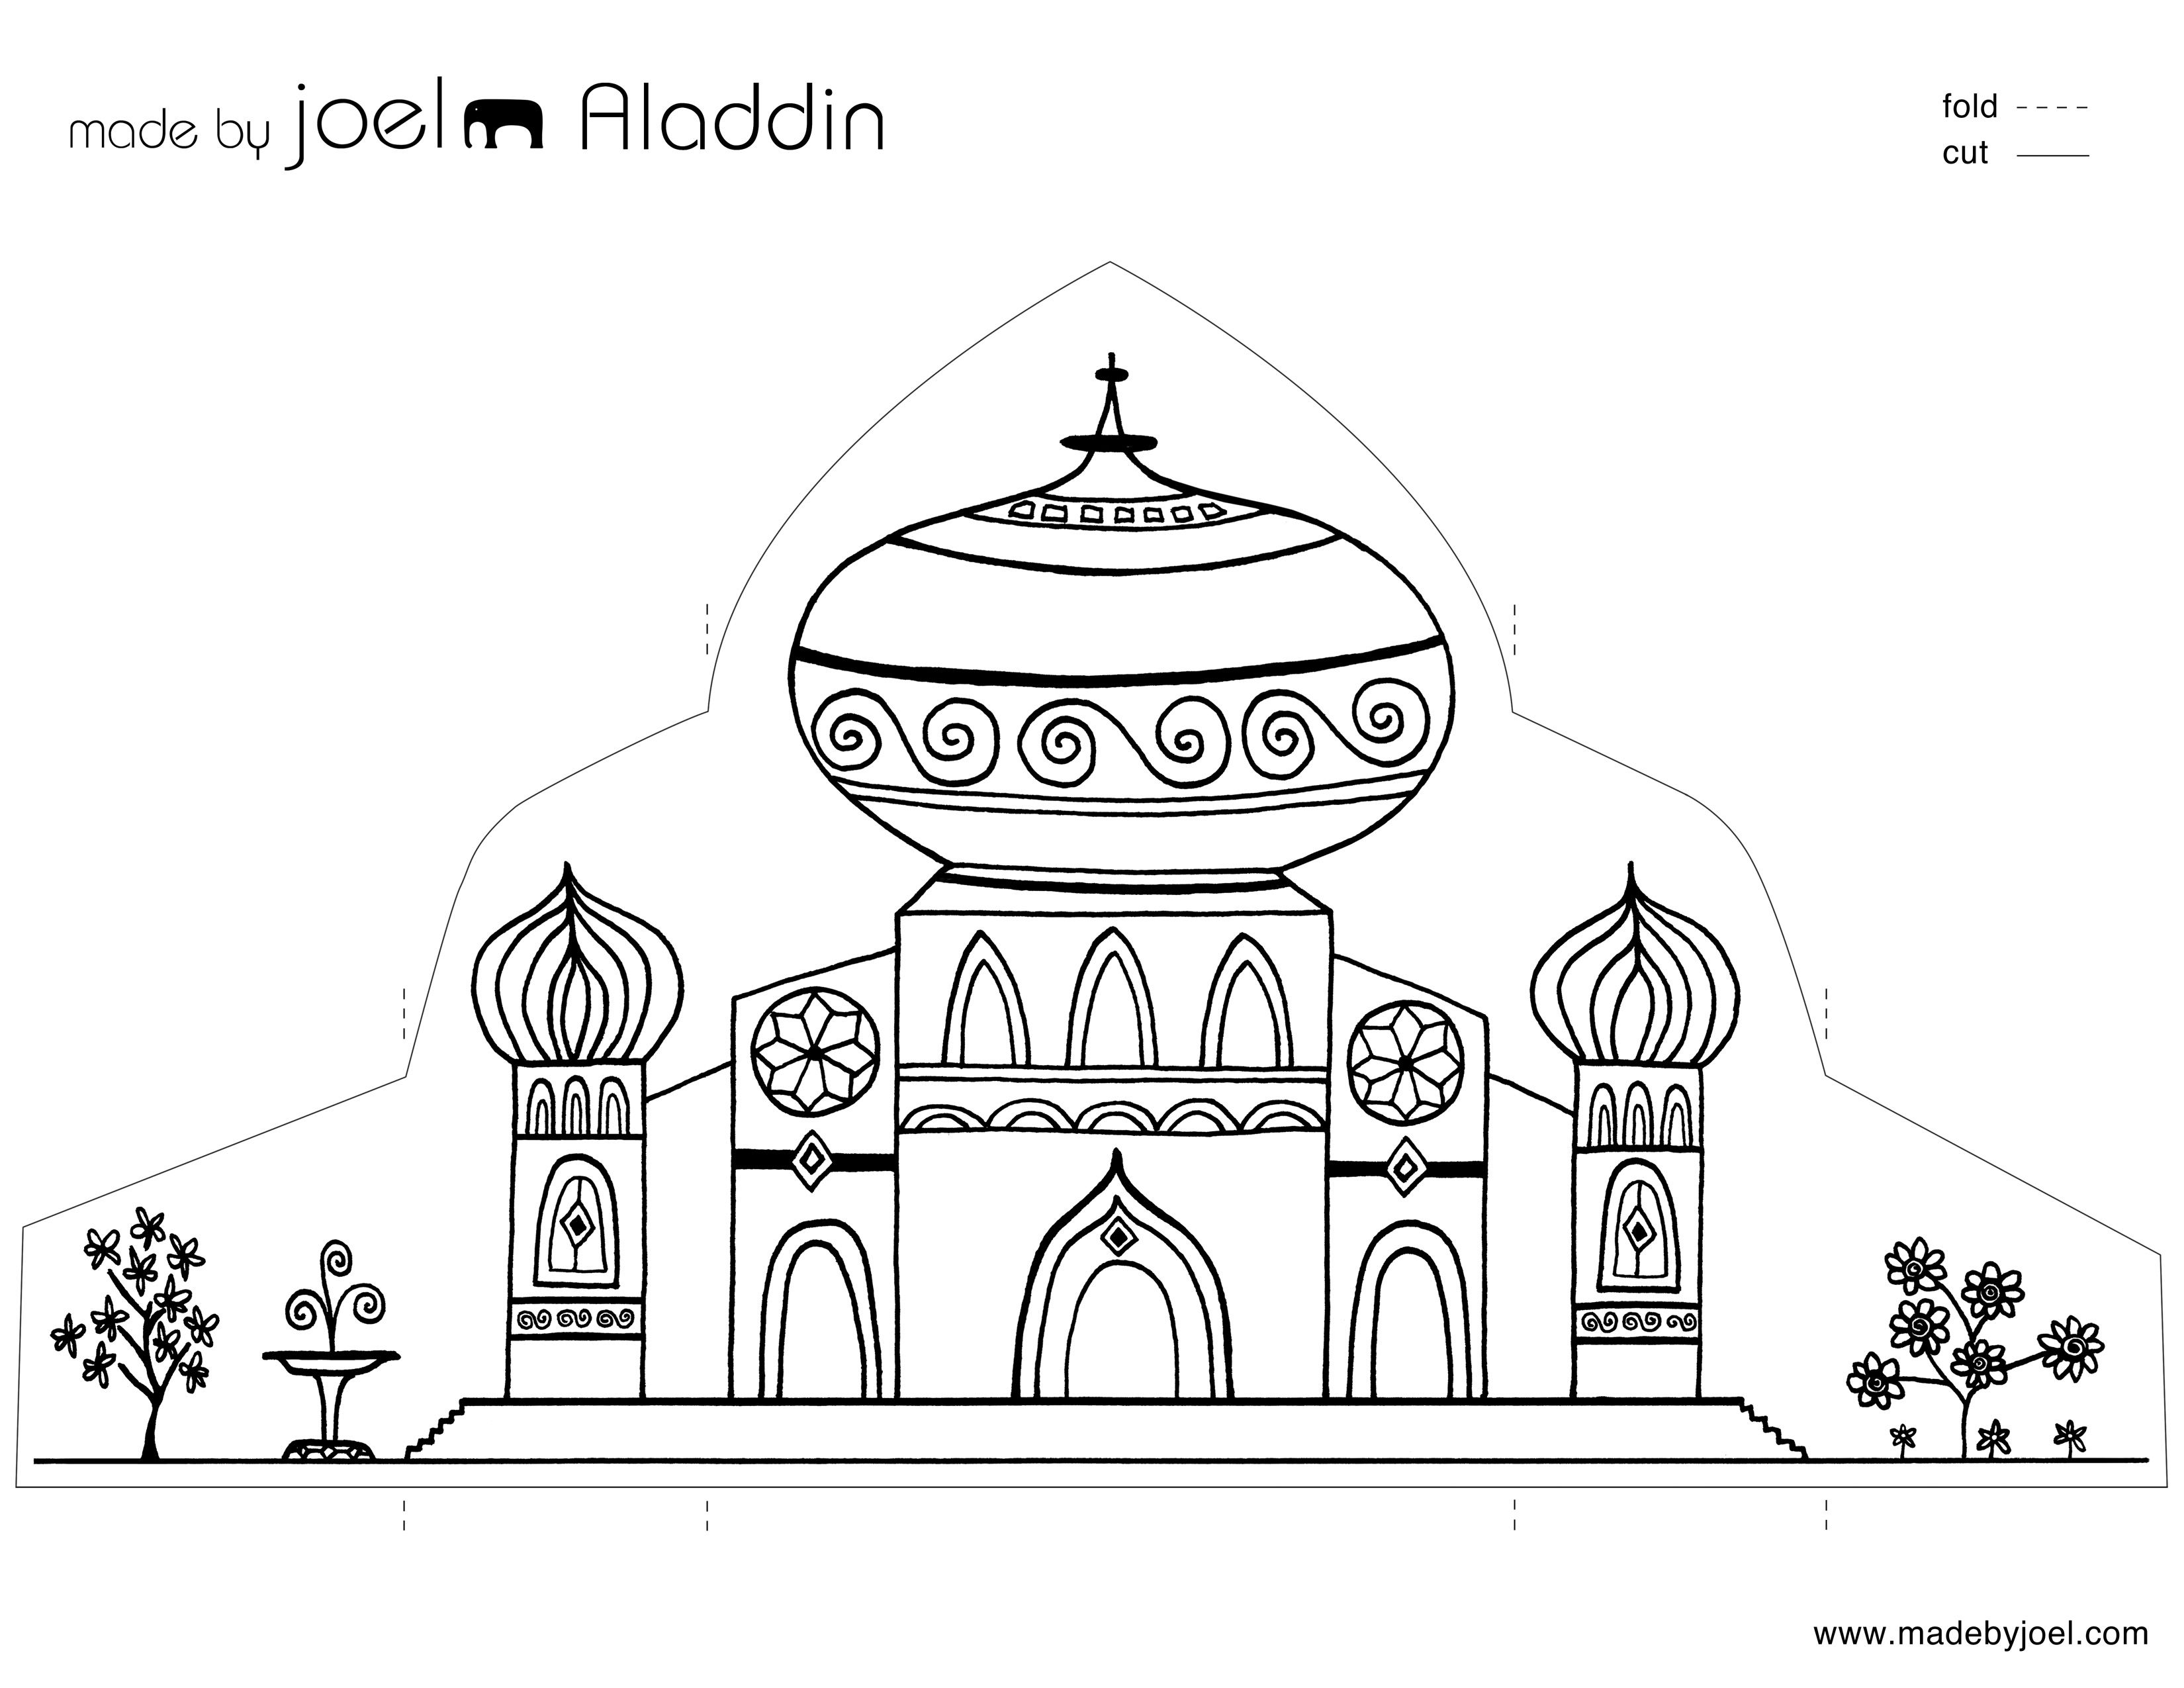 Made By Joel » Aladdin Paper City Craft Project! 2 Of 4